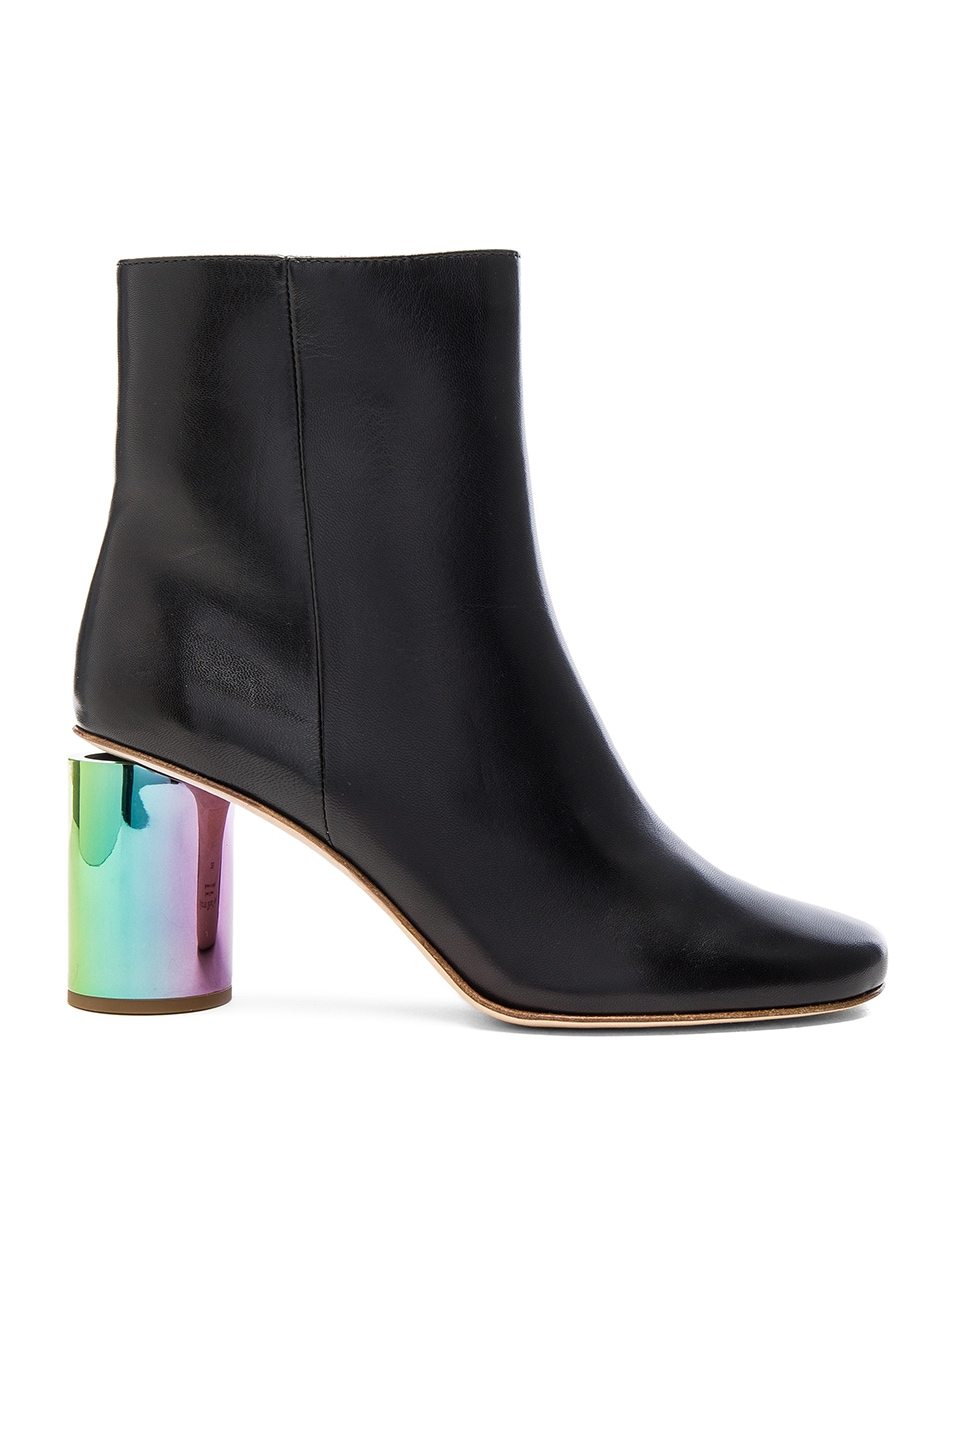 Image 1 of Acne Studios Leather Althea Booties in Black & Oily Yellow